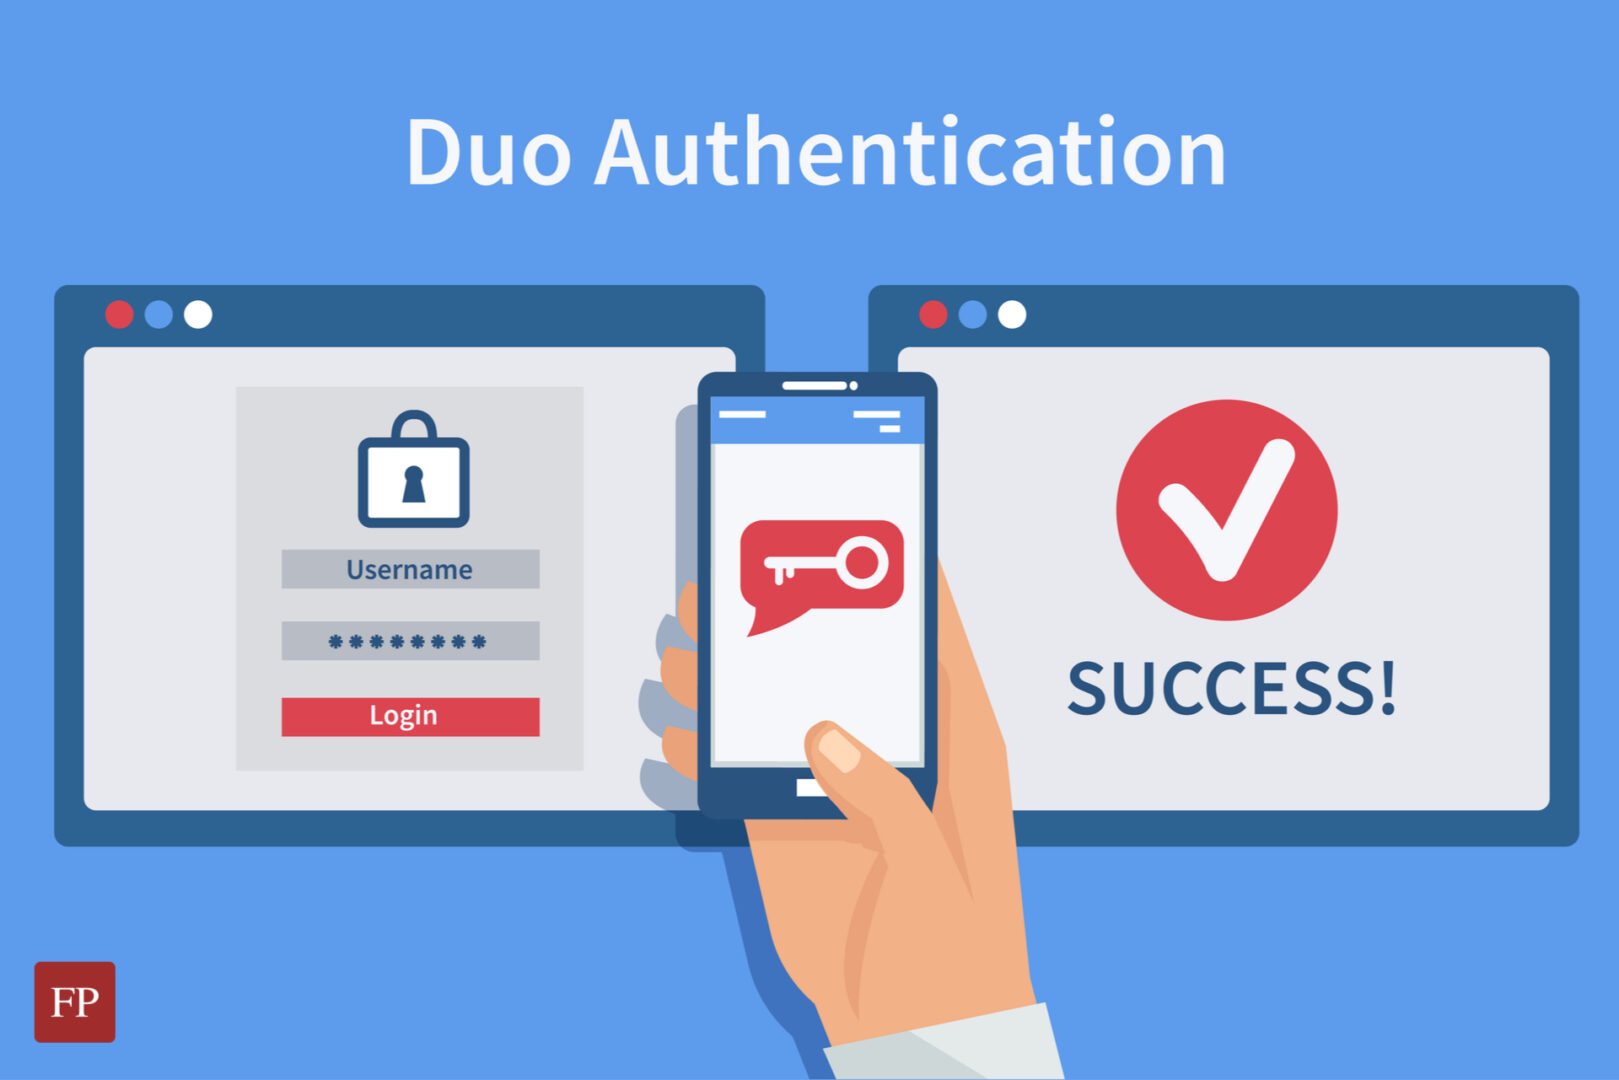 two-factor authentication 135 August 29, 2020